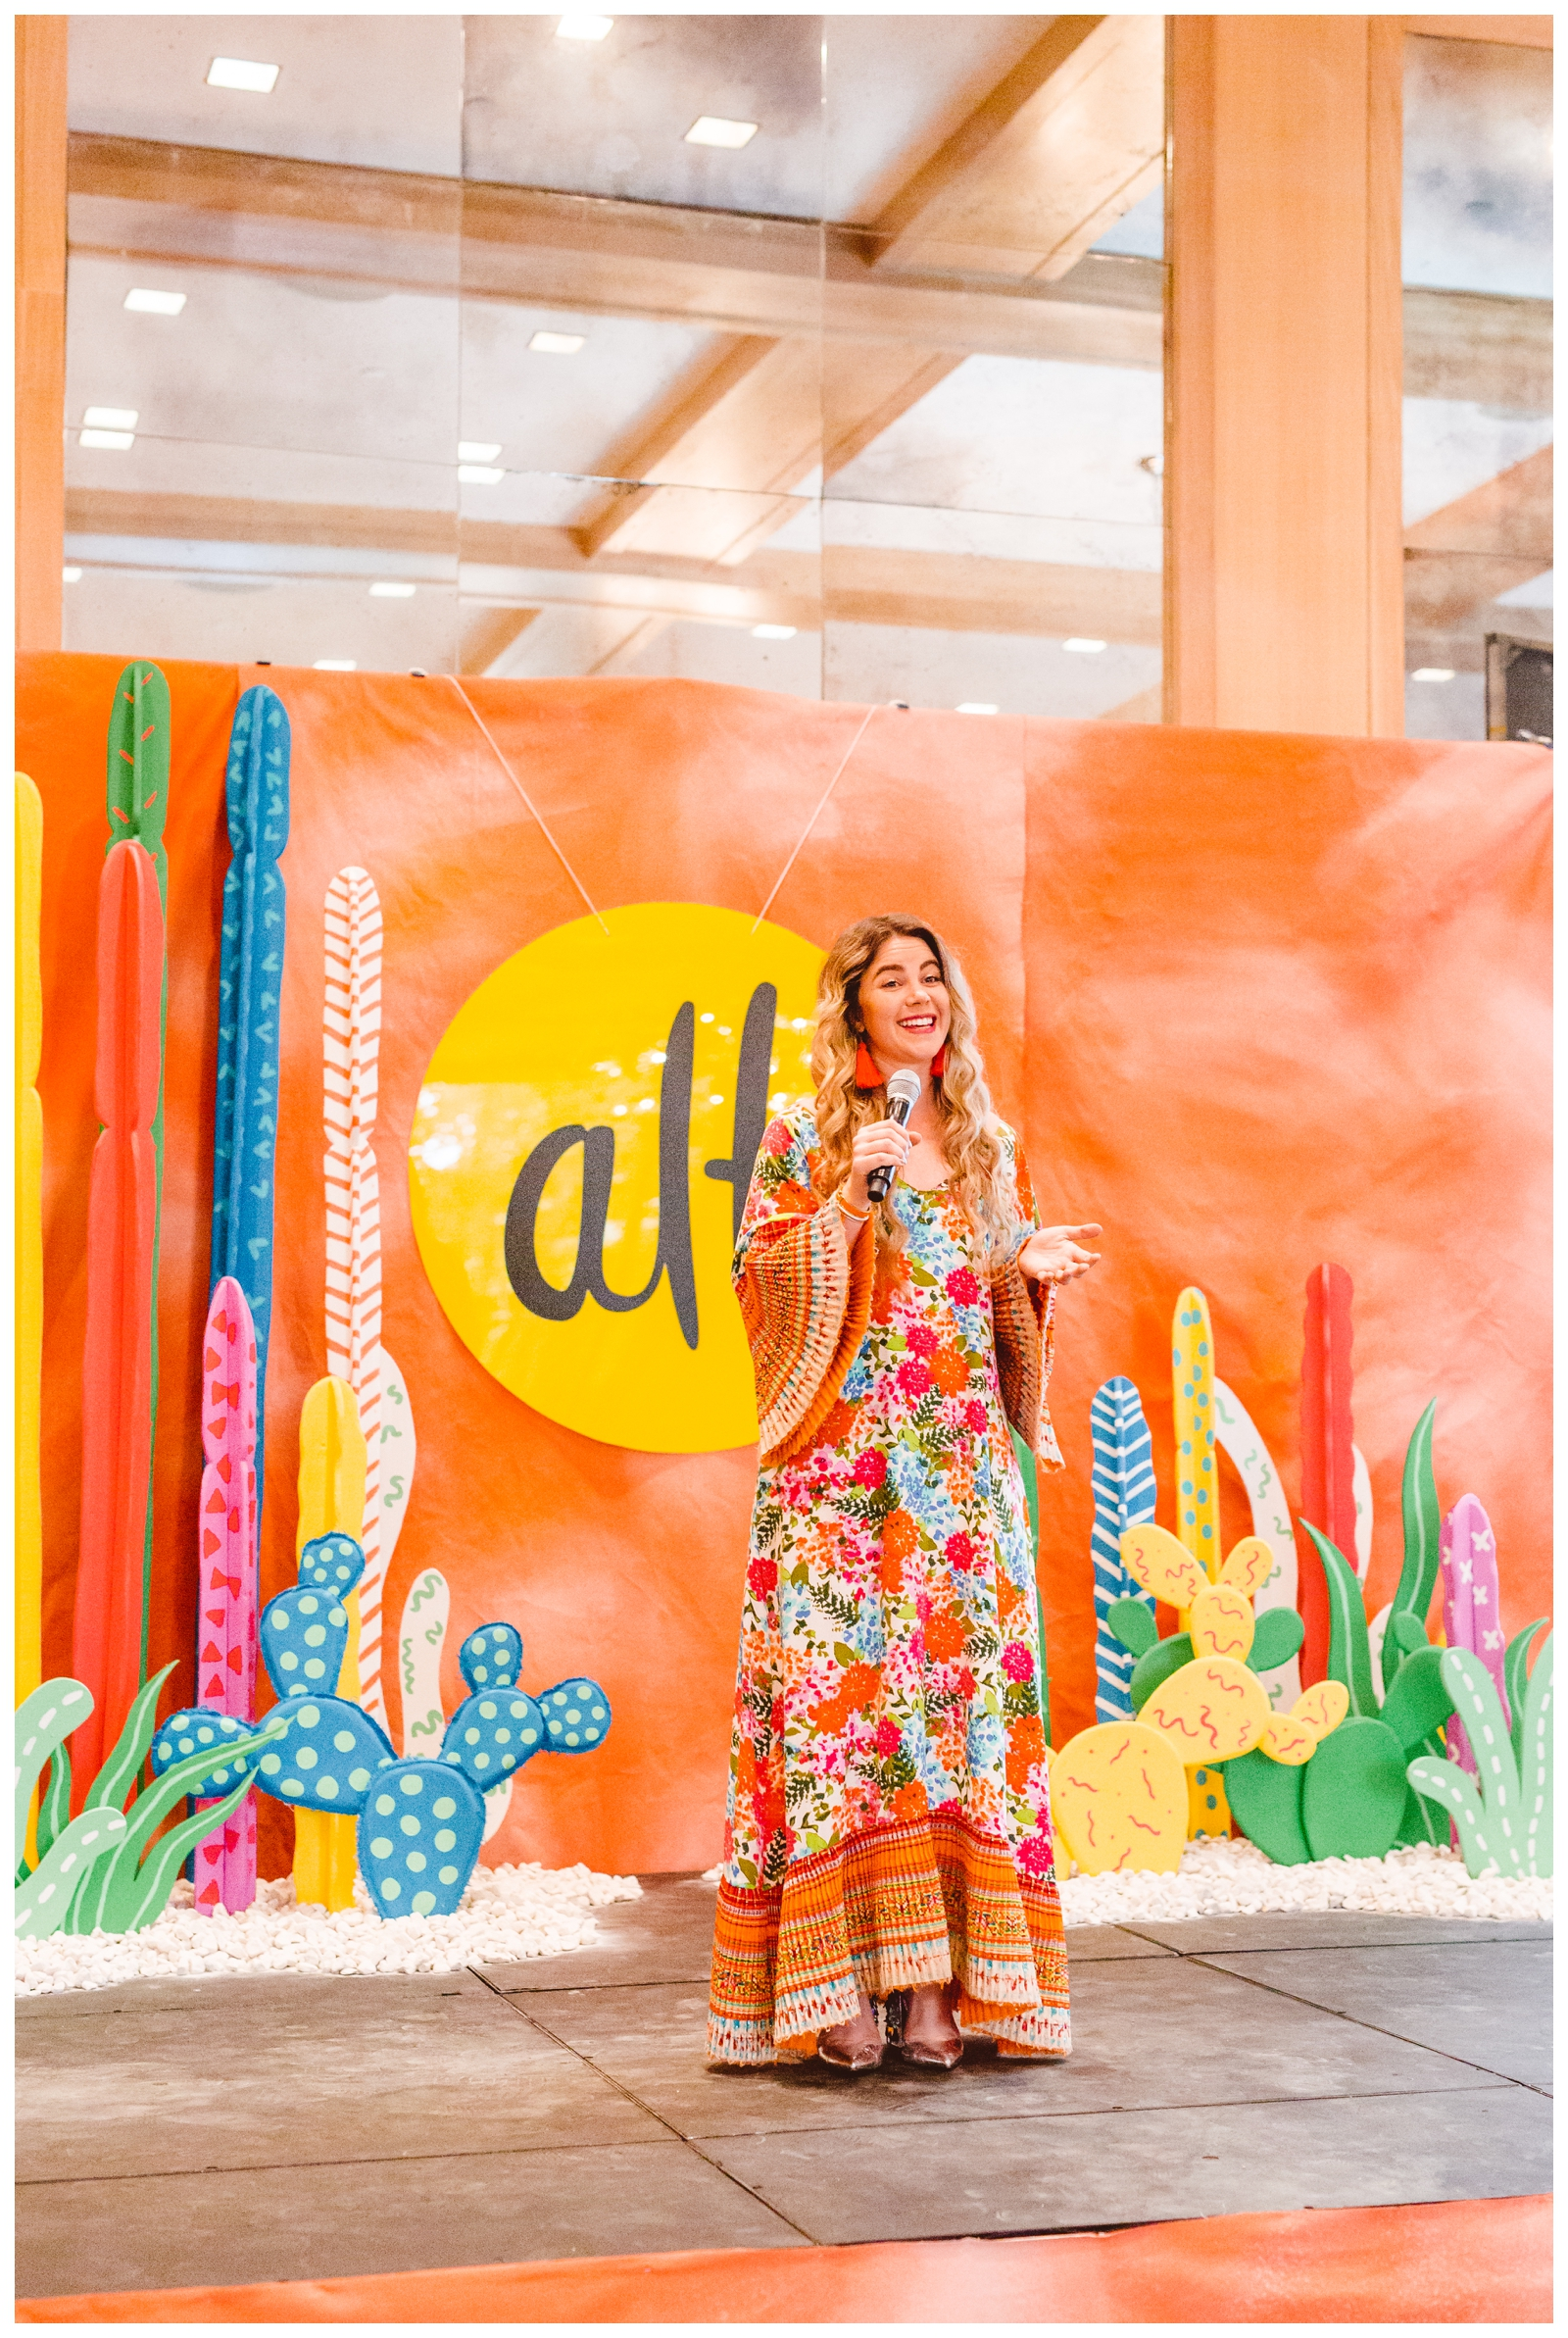 the-house-of-perna-runway-show-at-alt-summit-palm-springs-brooke-michelle-photography-3-photo.jpg